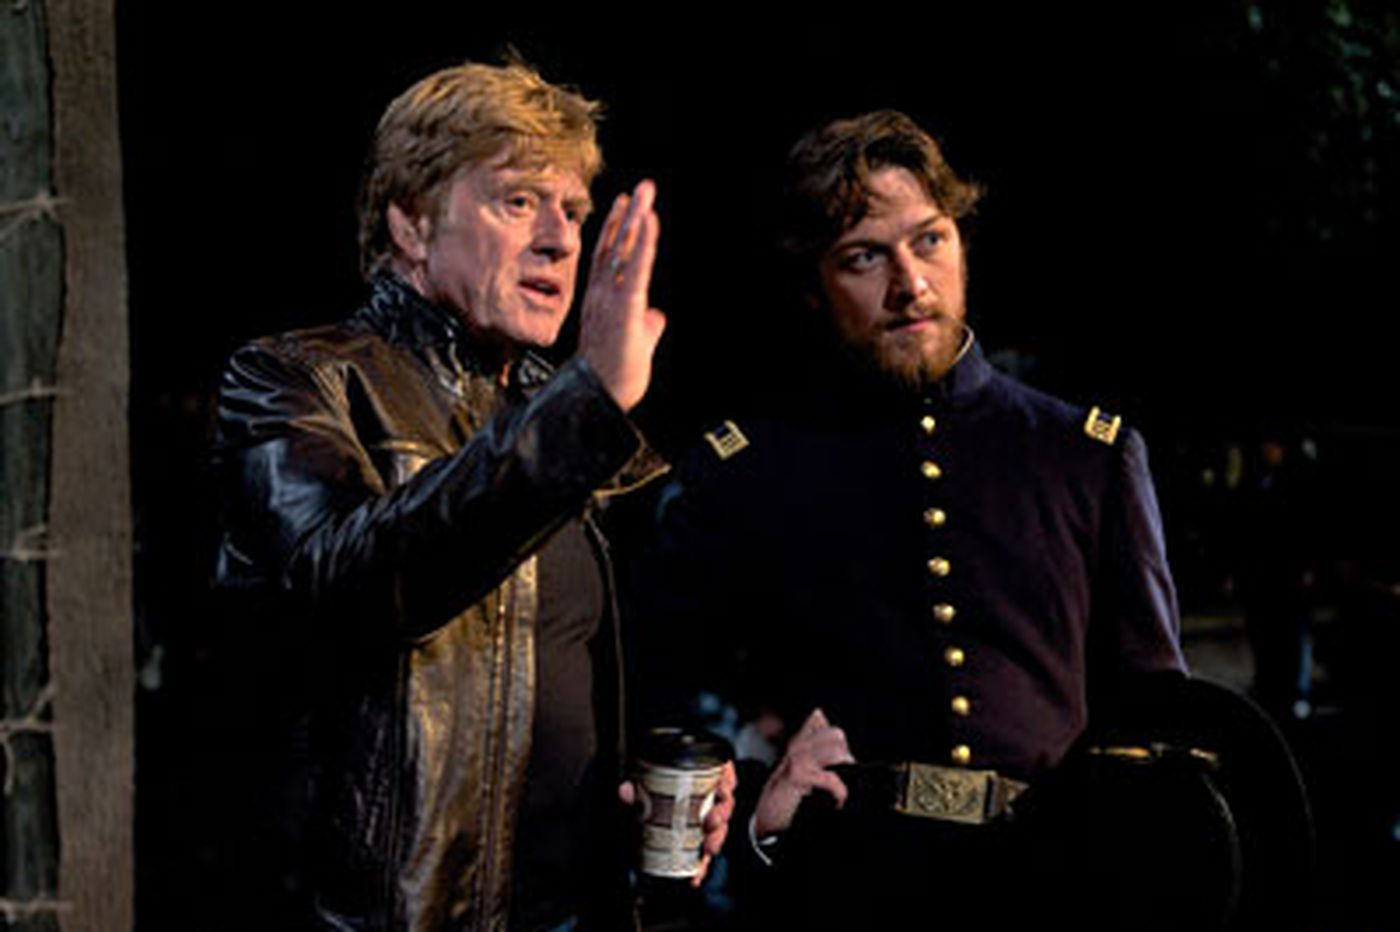 'Conspirator': Redford's take on historic injustice